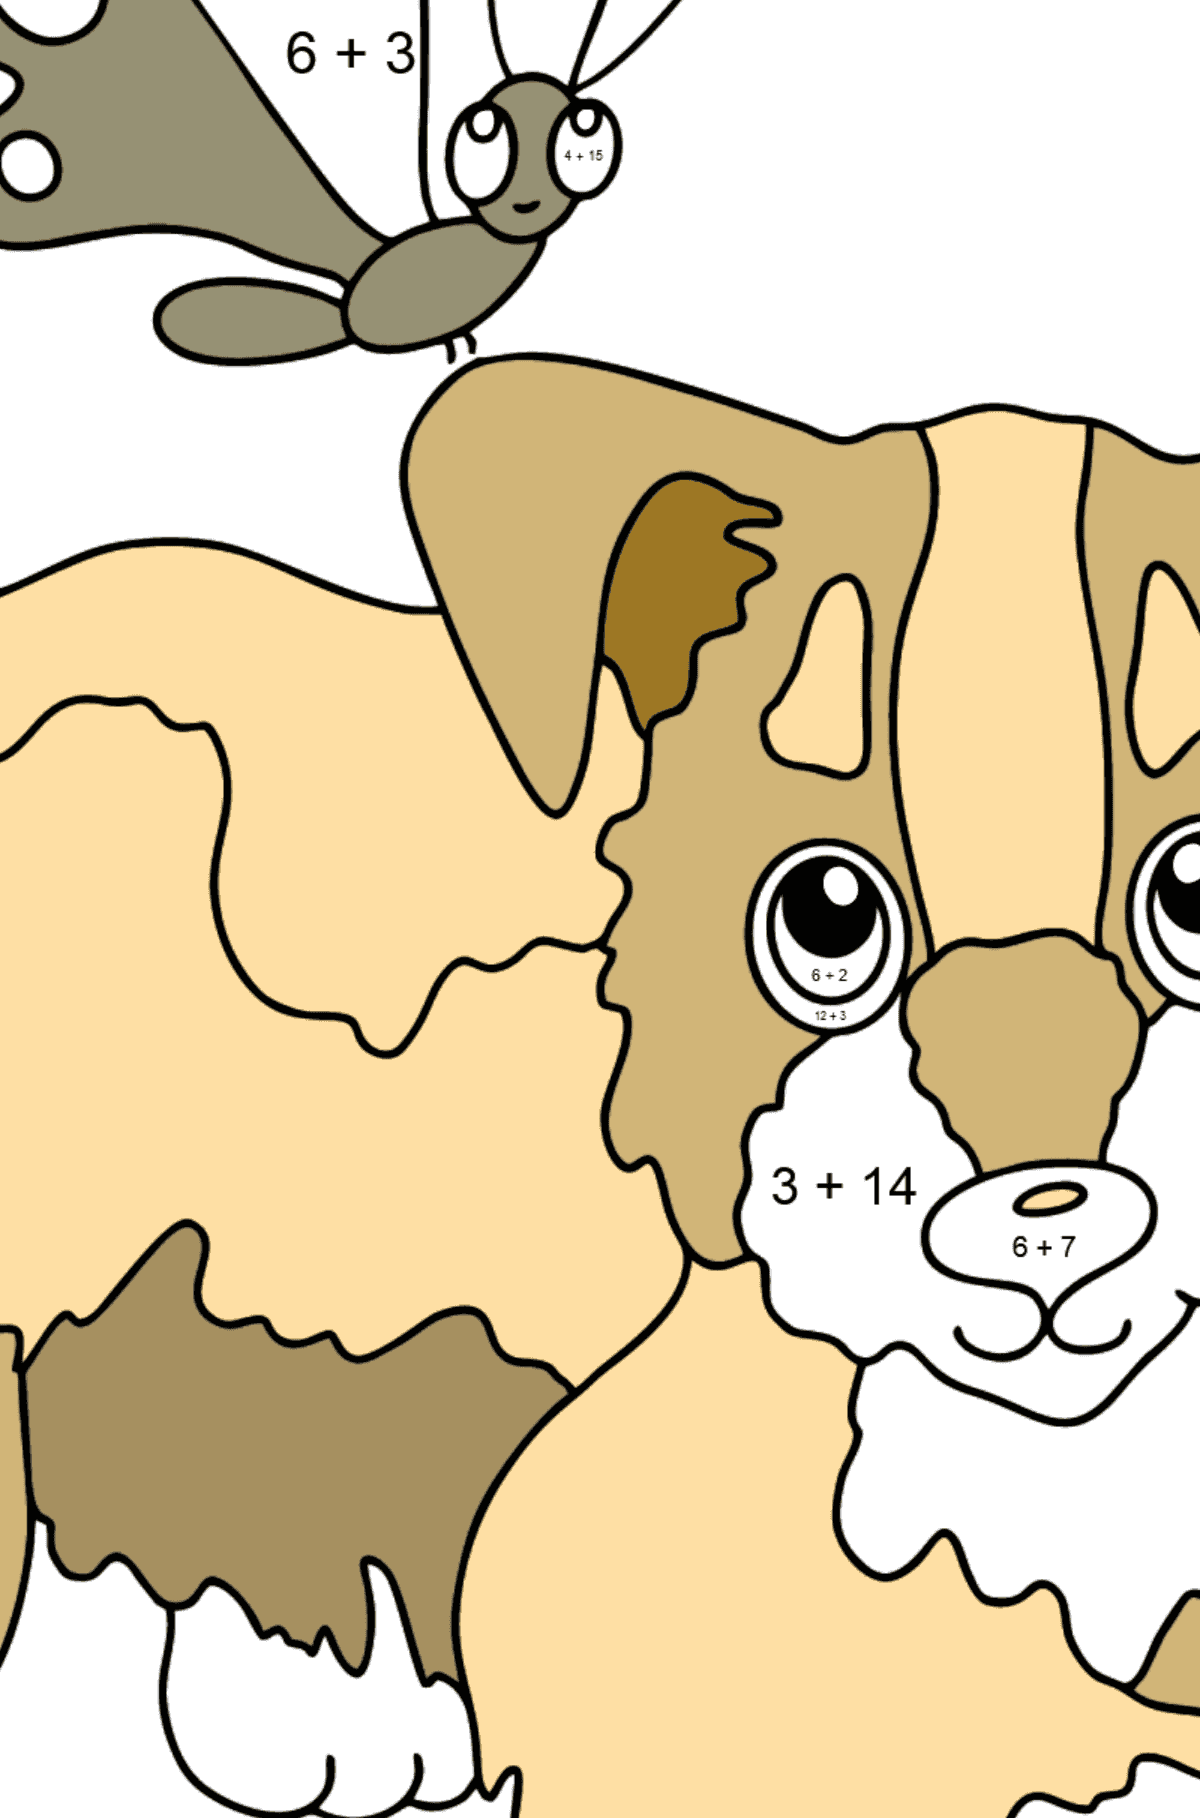 Coloring Page - A Dog is Playing with a Beautiful Butterfly - Math Coloring - Addition for Kids